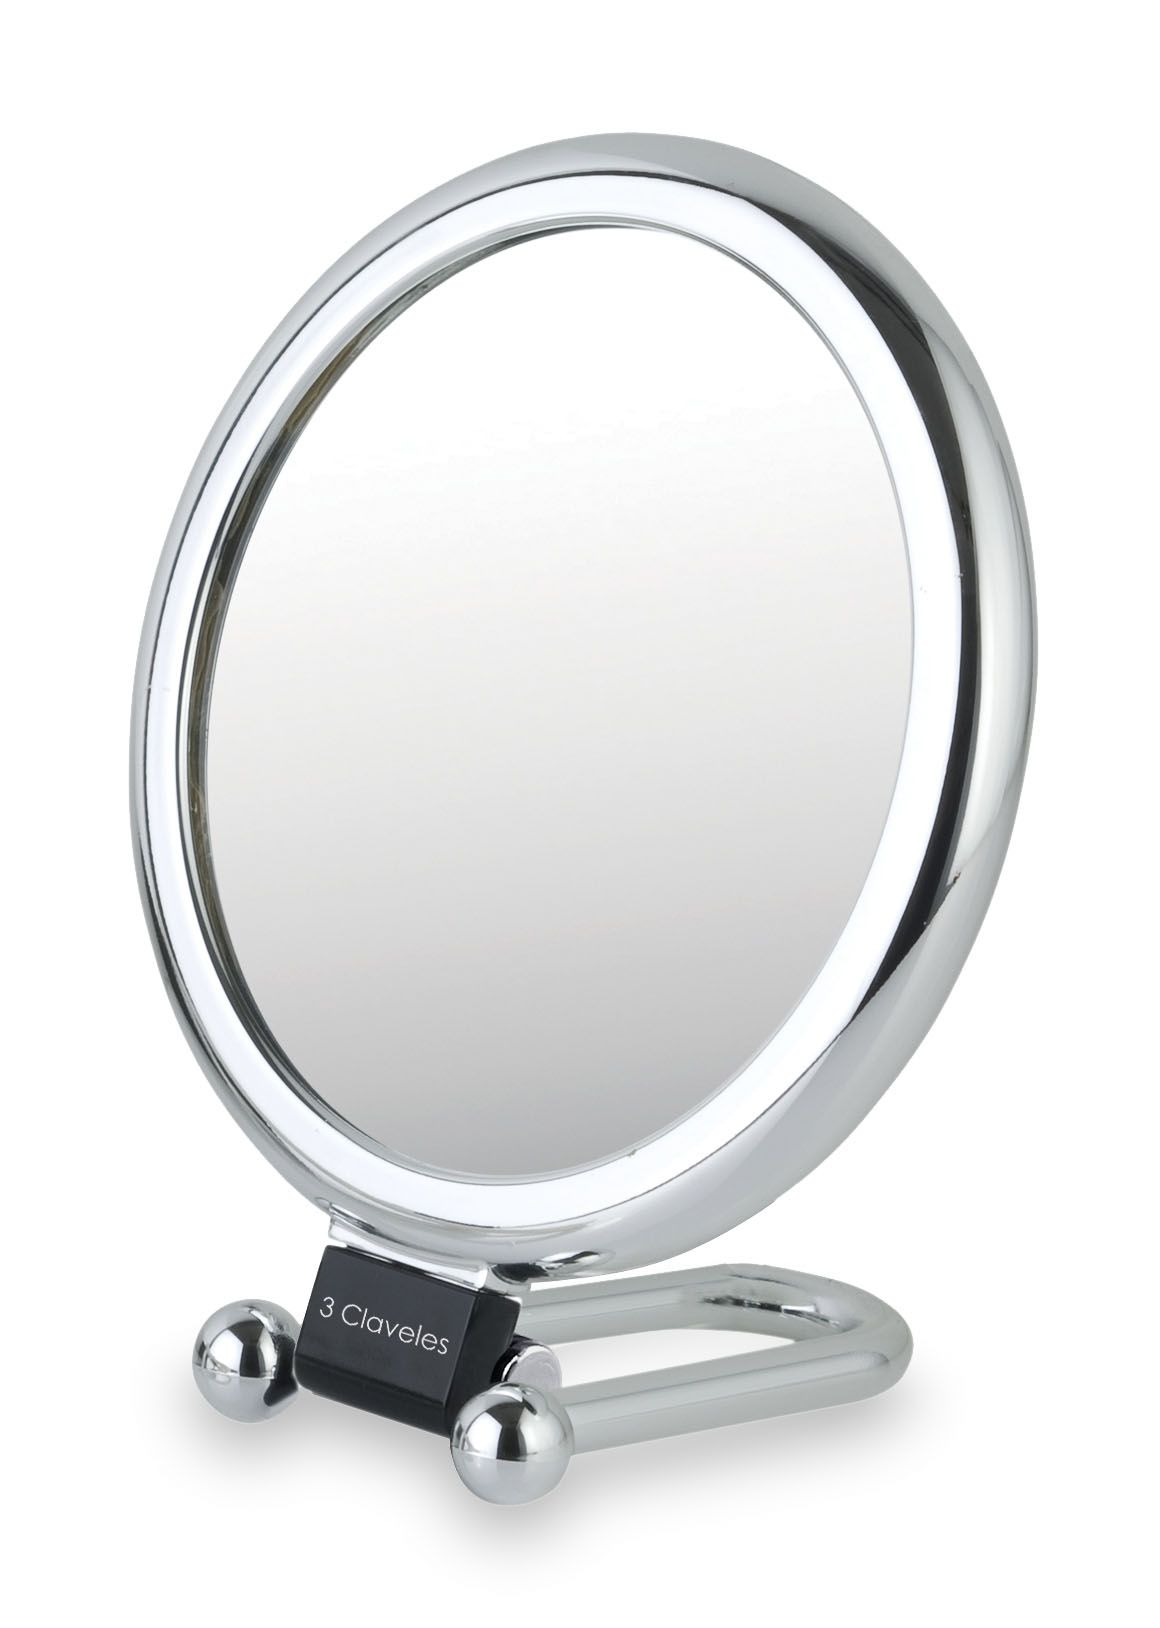 MAGNIFYING MIRROR FOLDING BASE - Ø 15 cm  - 1x7 3C